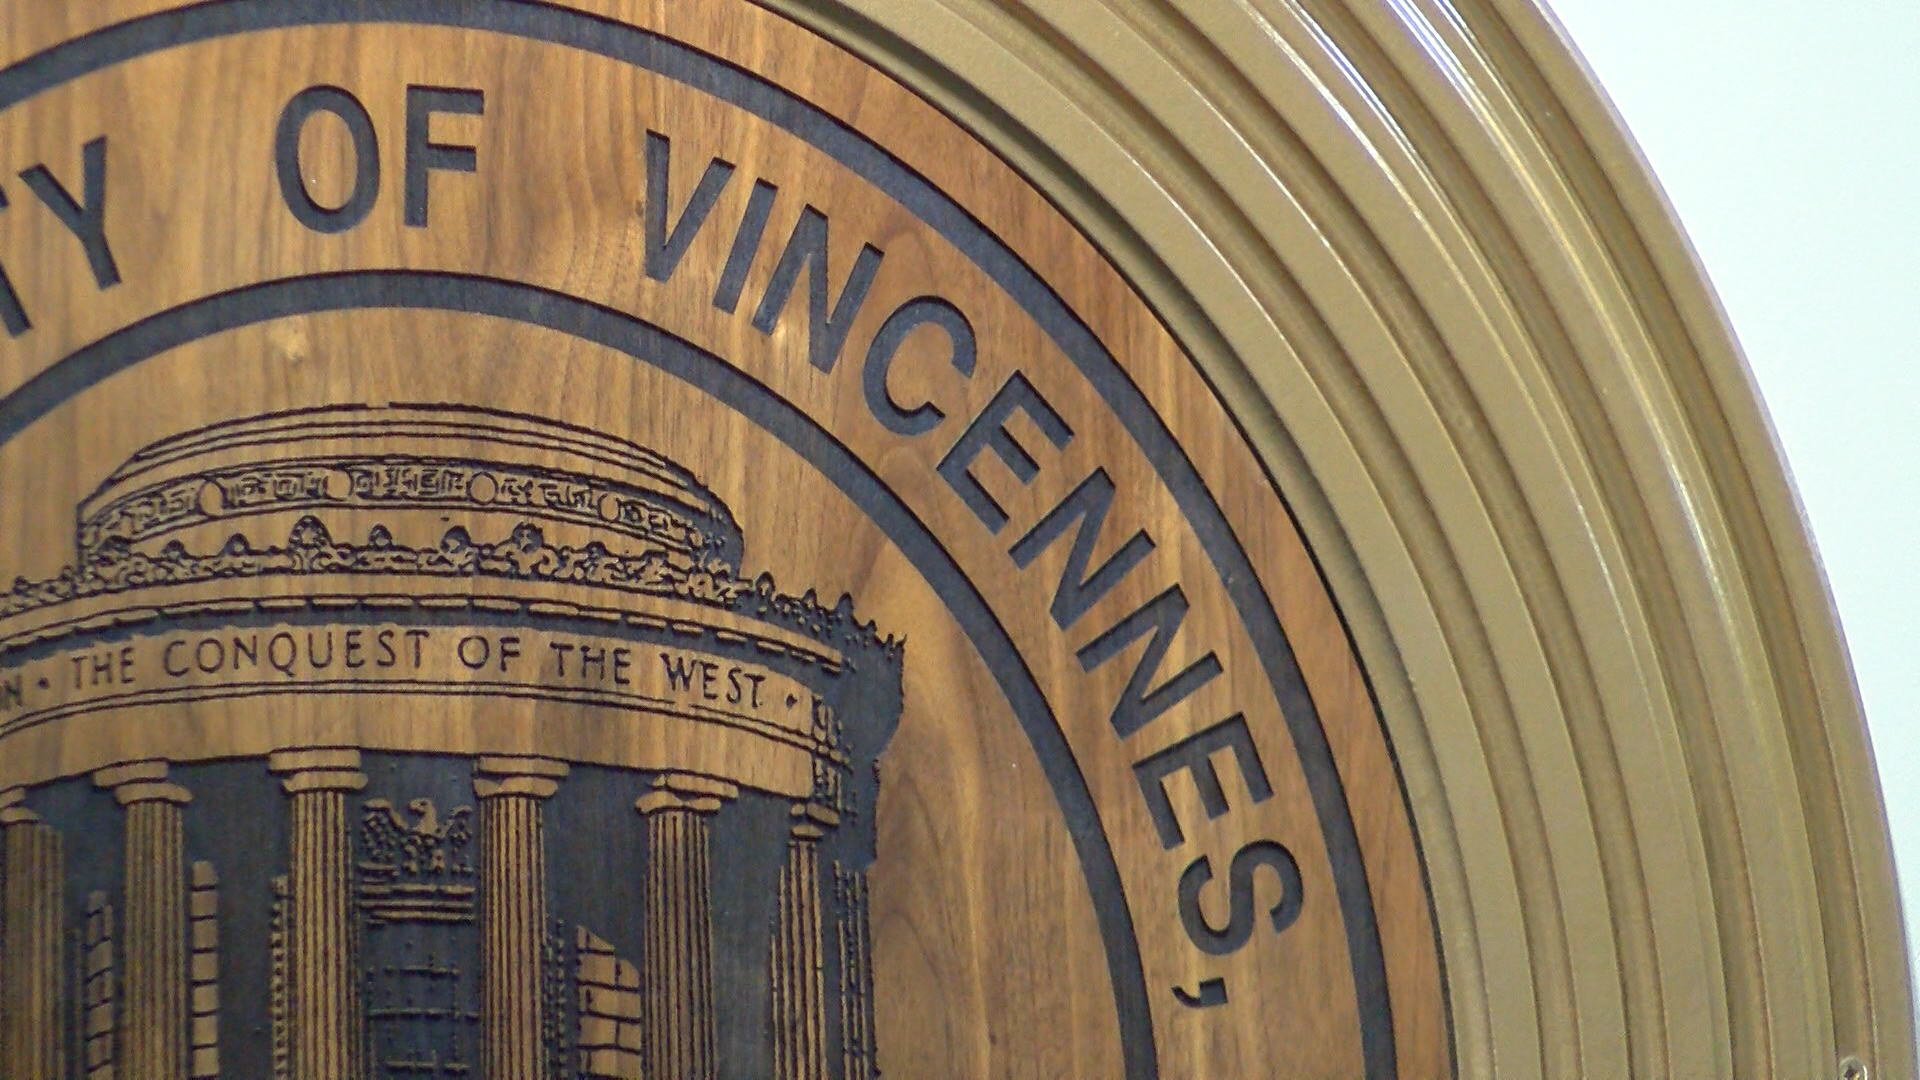 vincennes sign_1492631447808.jpg